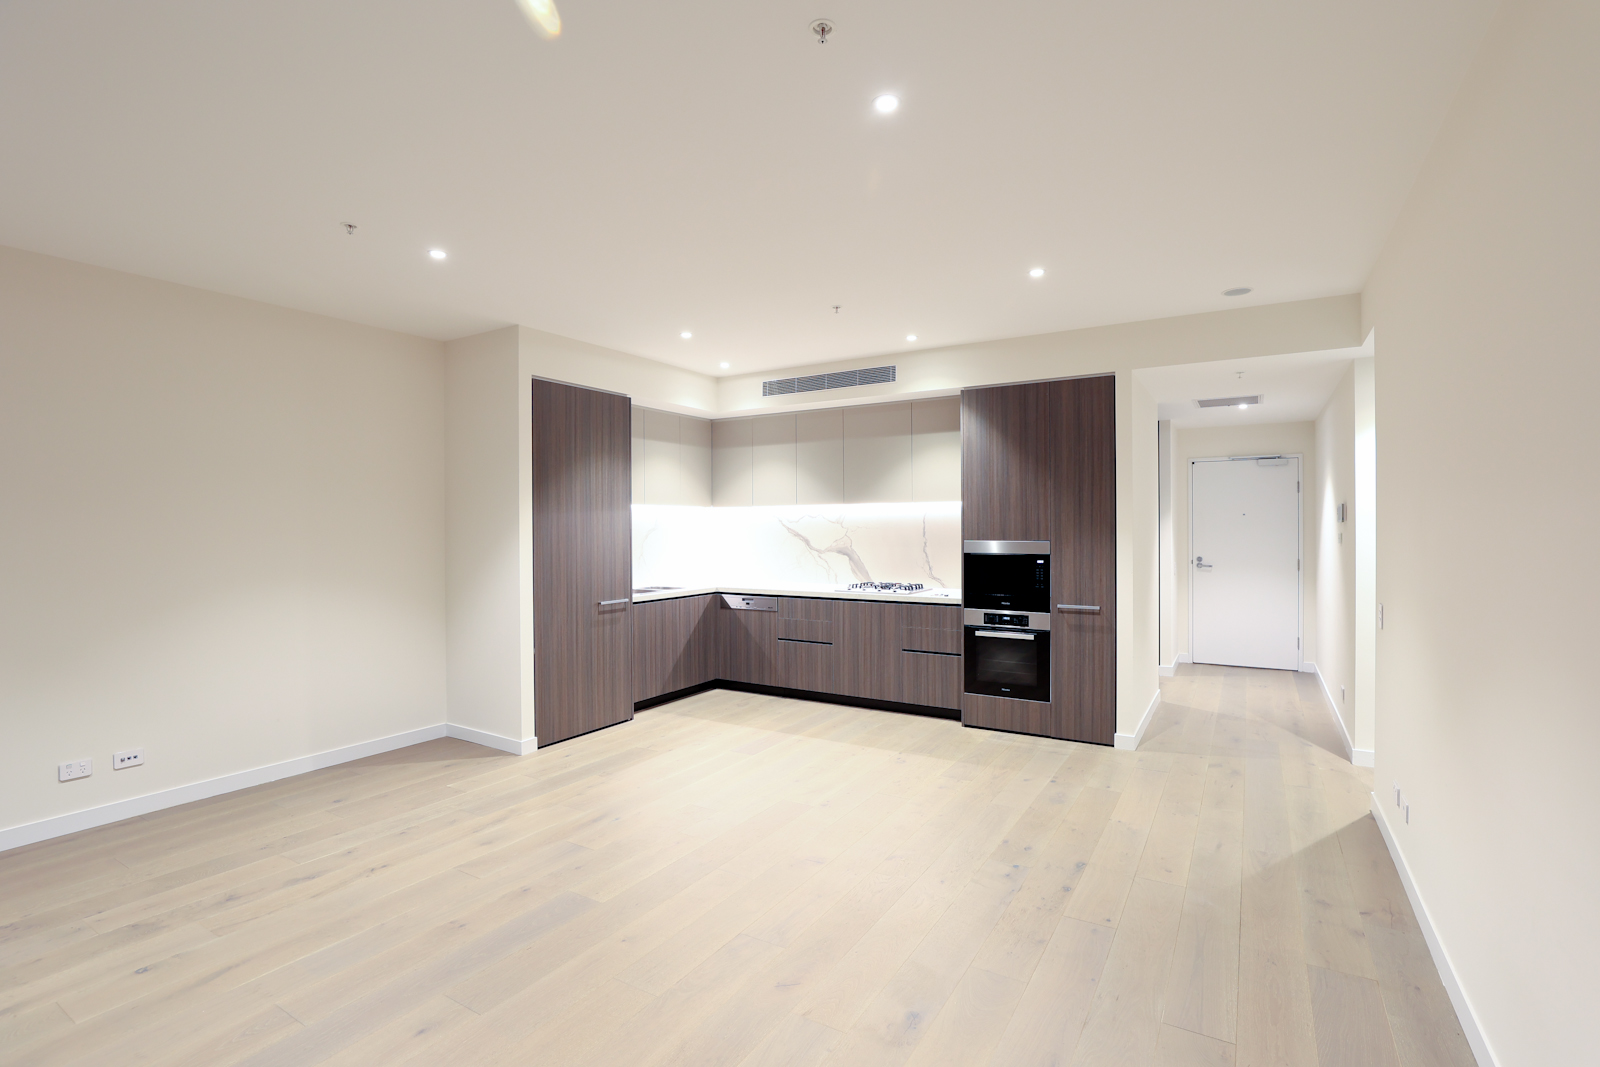 NBH – North Ryde – 2 bedroom apartment for lease